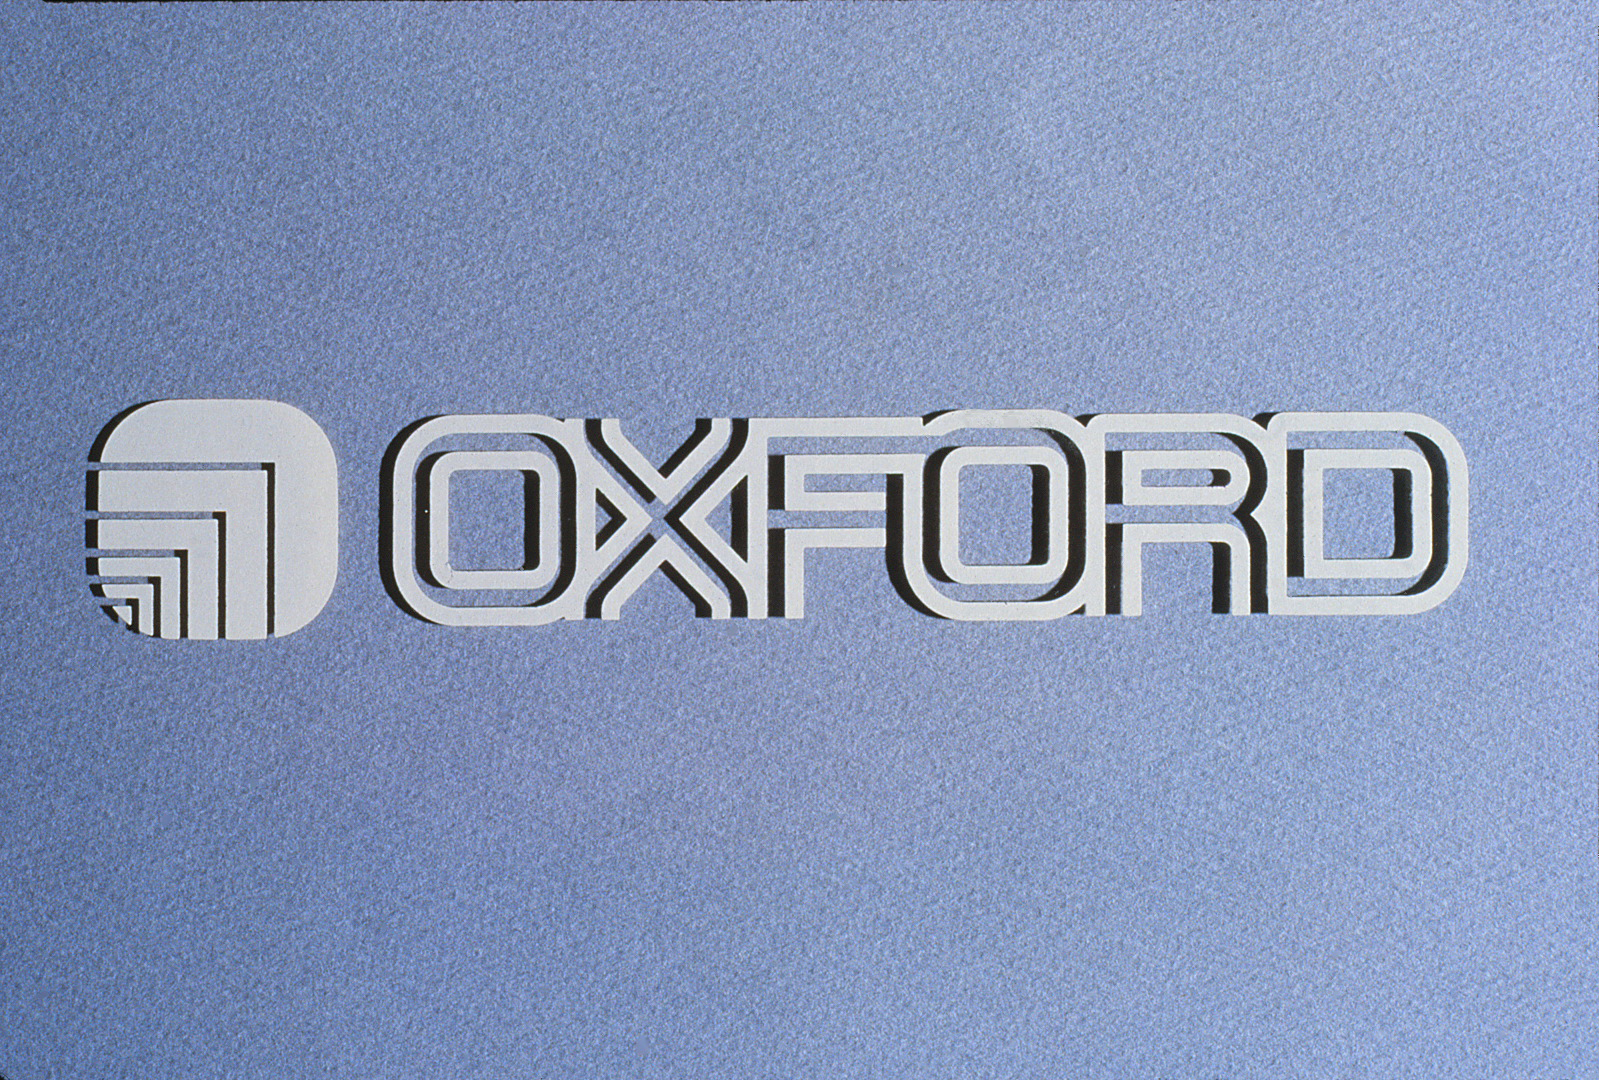 The raised Oxford logo and typeface as it looks on a wall.